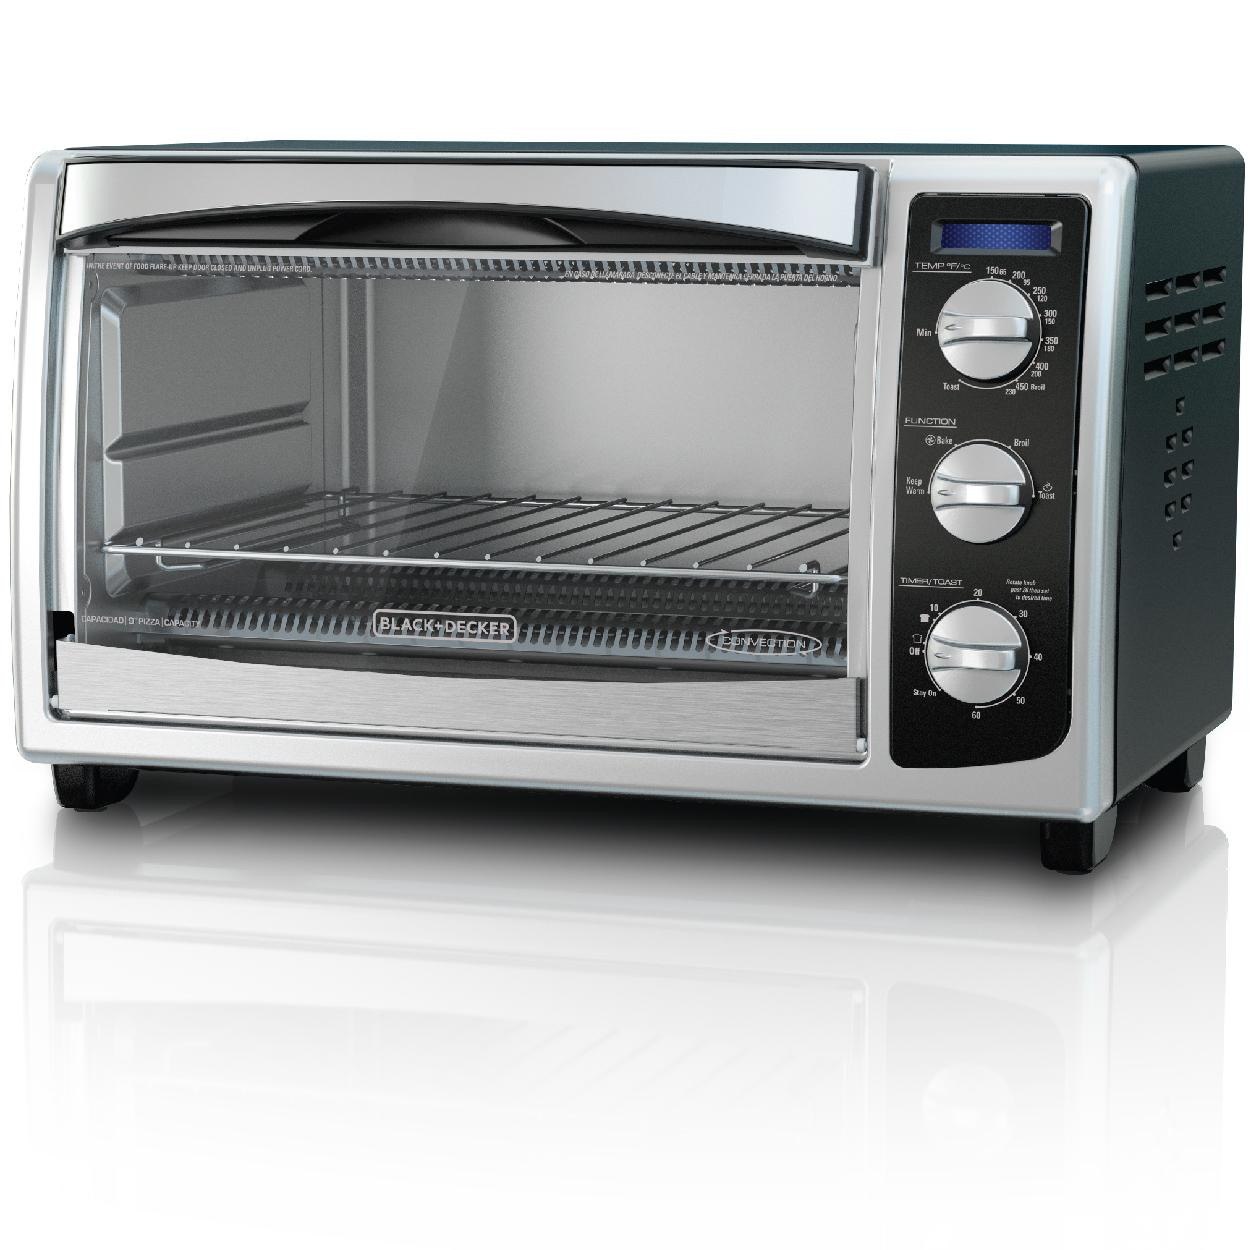 black decker to1675b 6 slice convection countertop toaster oven includes bake. Black Bedroom Furniture Sets. Home Design Ideas